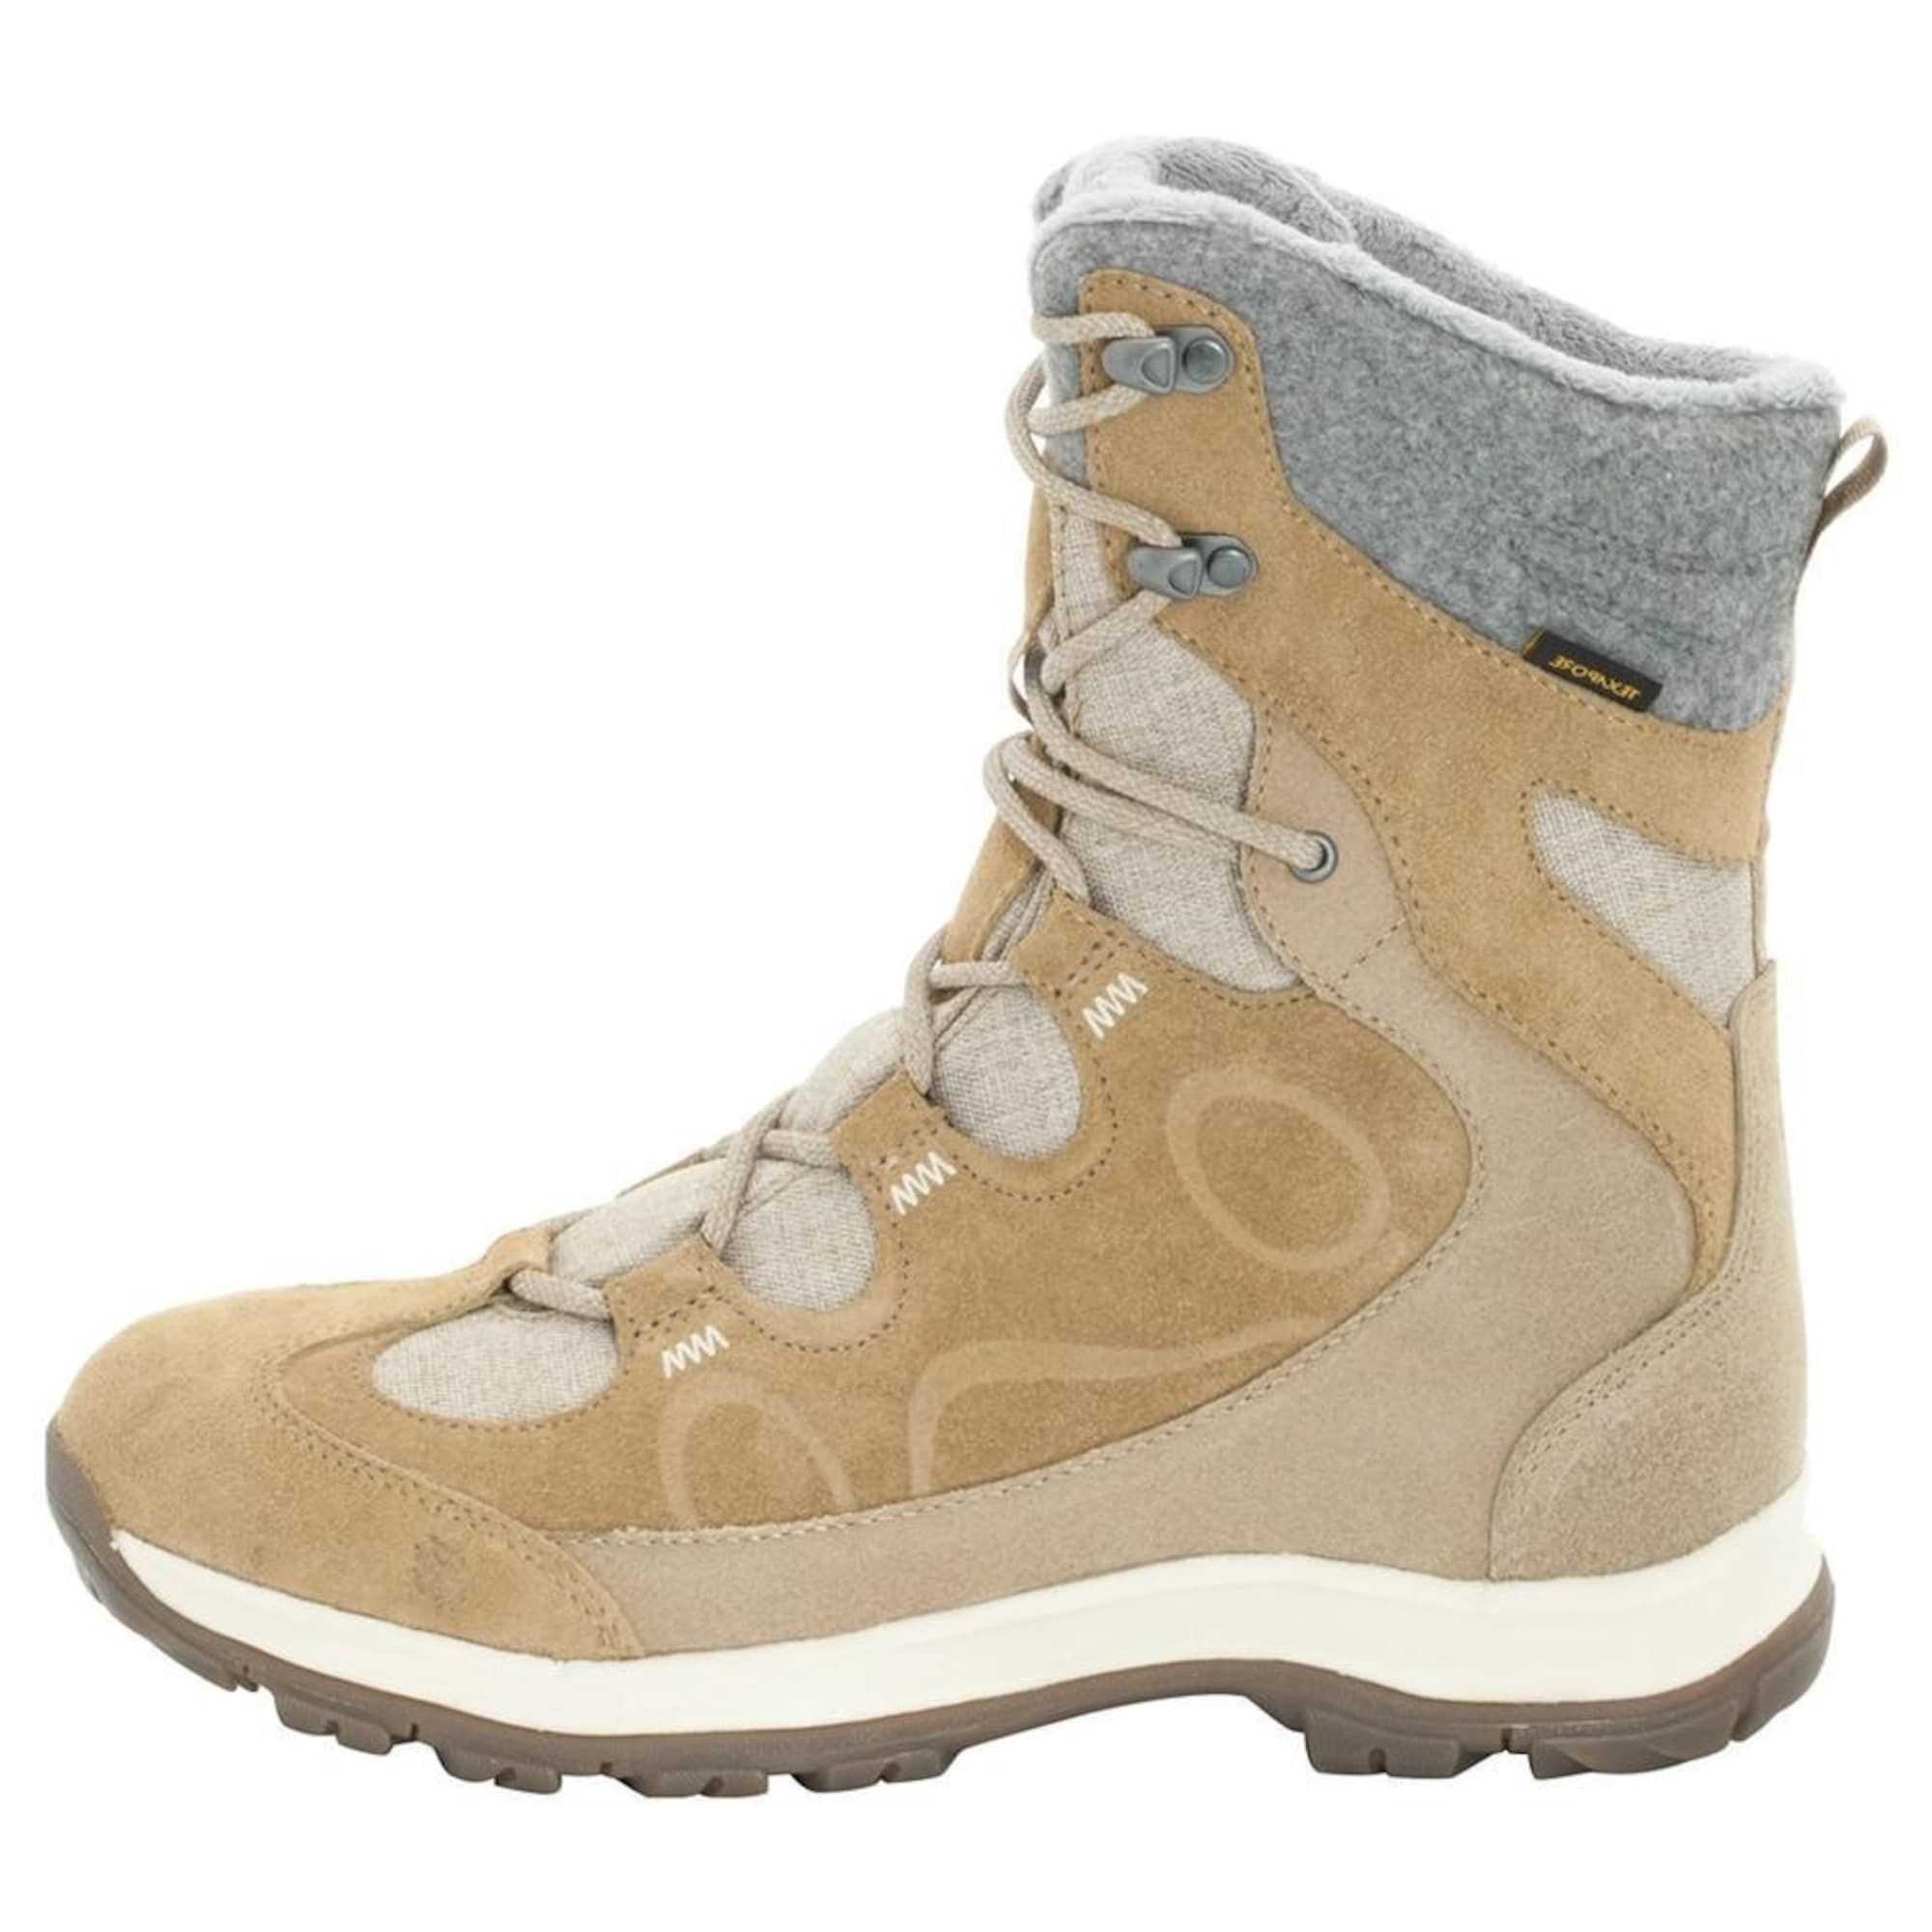 Winterstiefel ´THUNDER BAY TEXAPORE HIGH W´